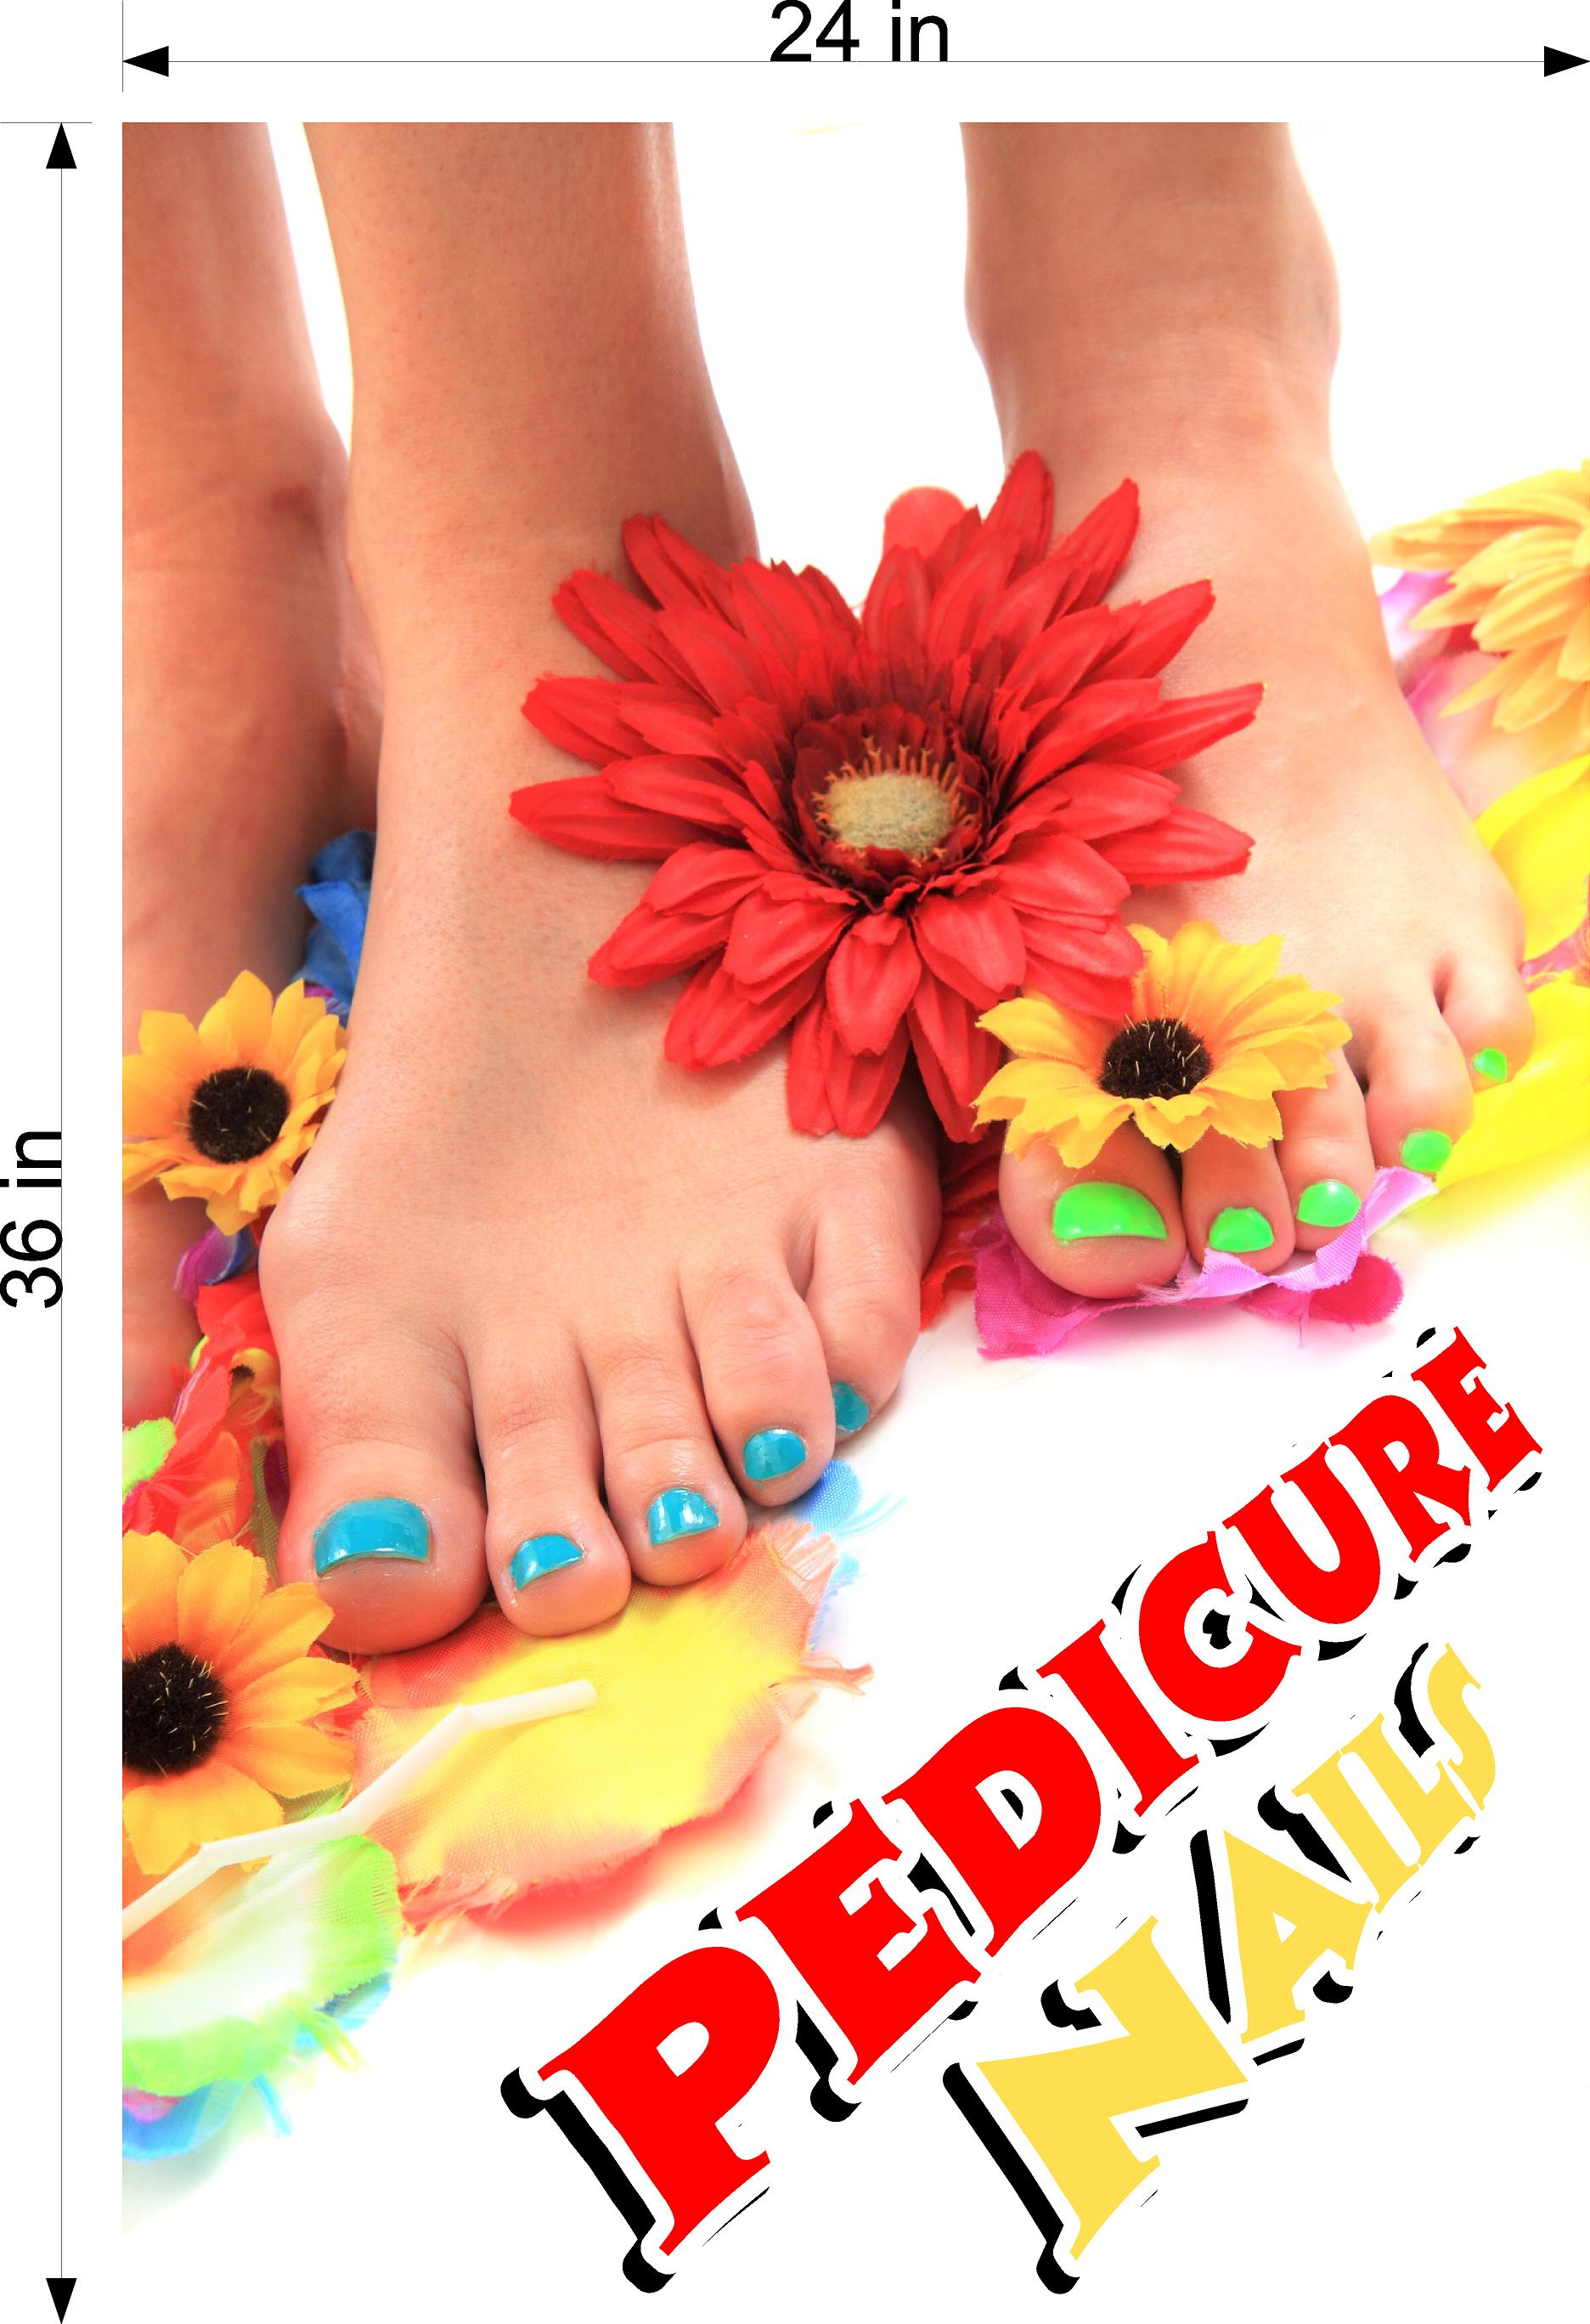 Pedicure 27 Wallpaper Fabric Poster Decal with Adhesive Backing Wall Sticker Decor Indoors Interior Sign Vertical